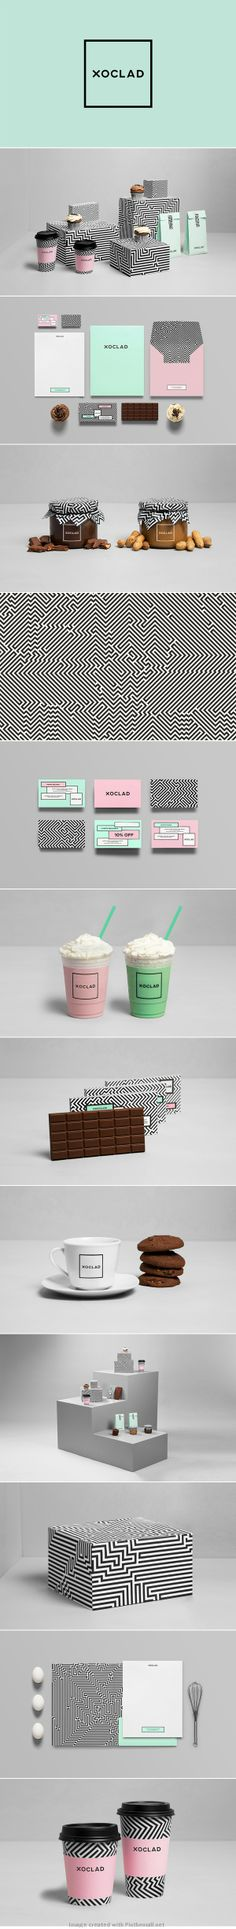 XOCLAD Identity and packaging design by Anagrama